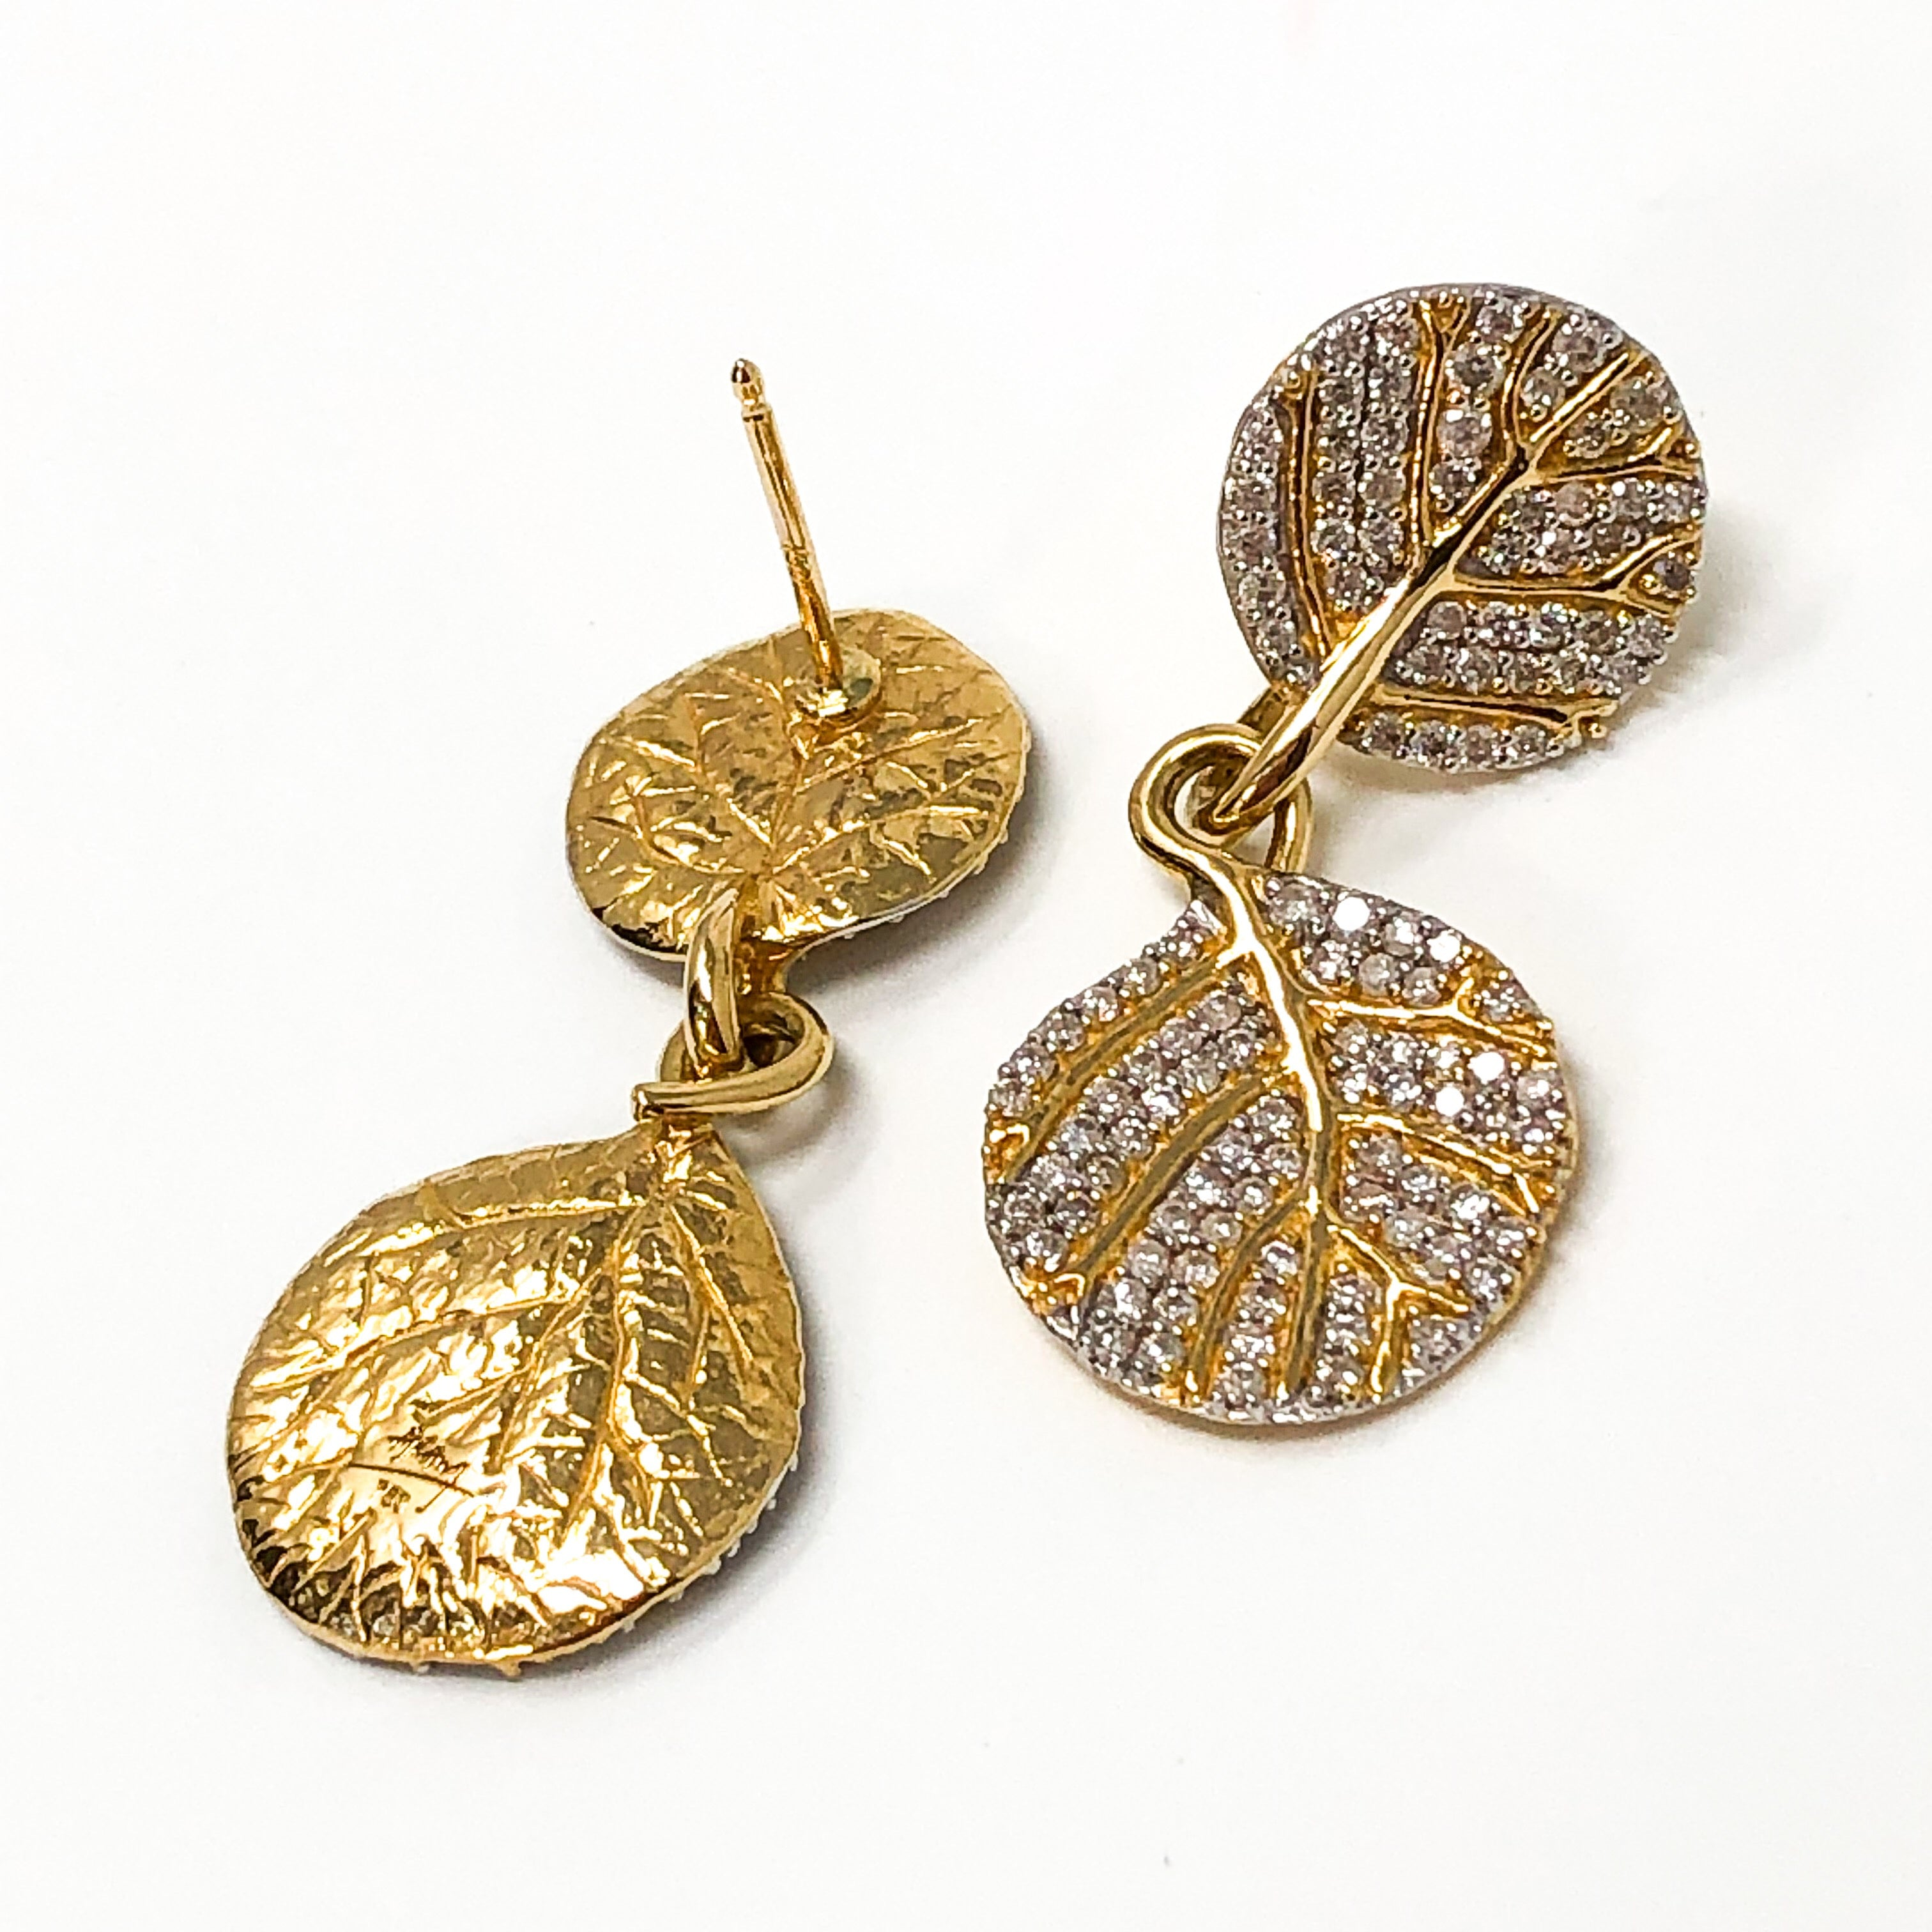 18kt Gold and Diamond Leaf Earrings